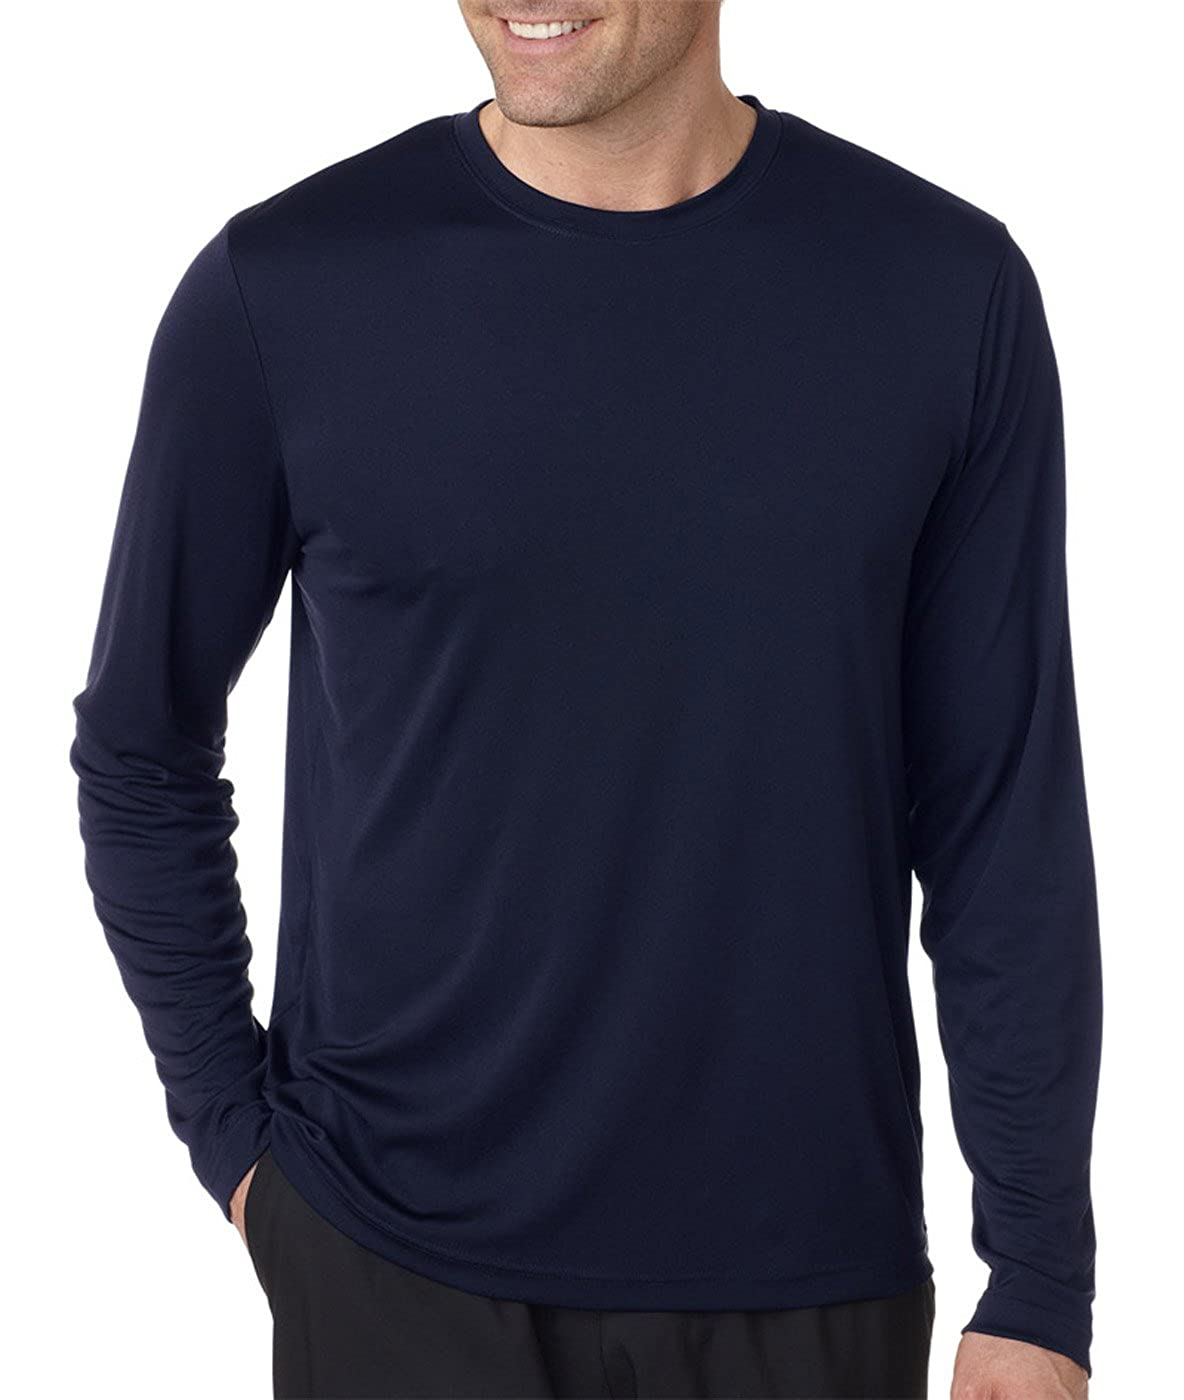 Hanes Men's Long Sleeve Cool Dri T-Shirt UPF 50  (Pack of 2) at ...